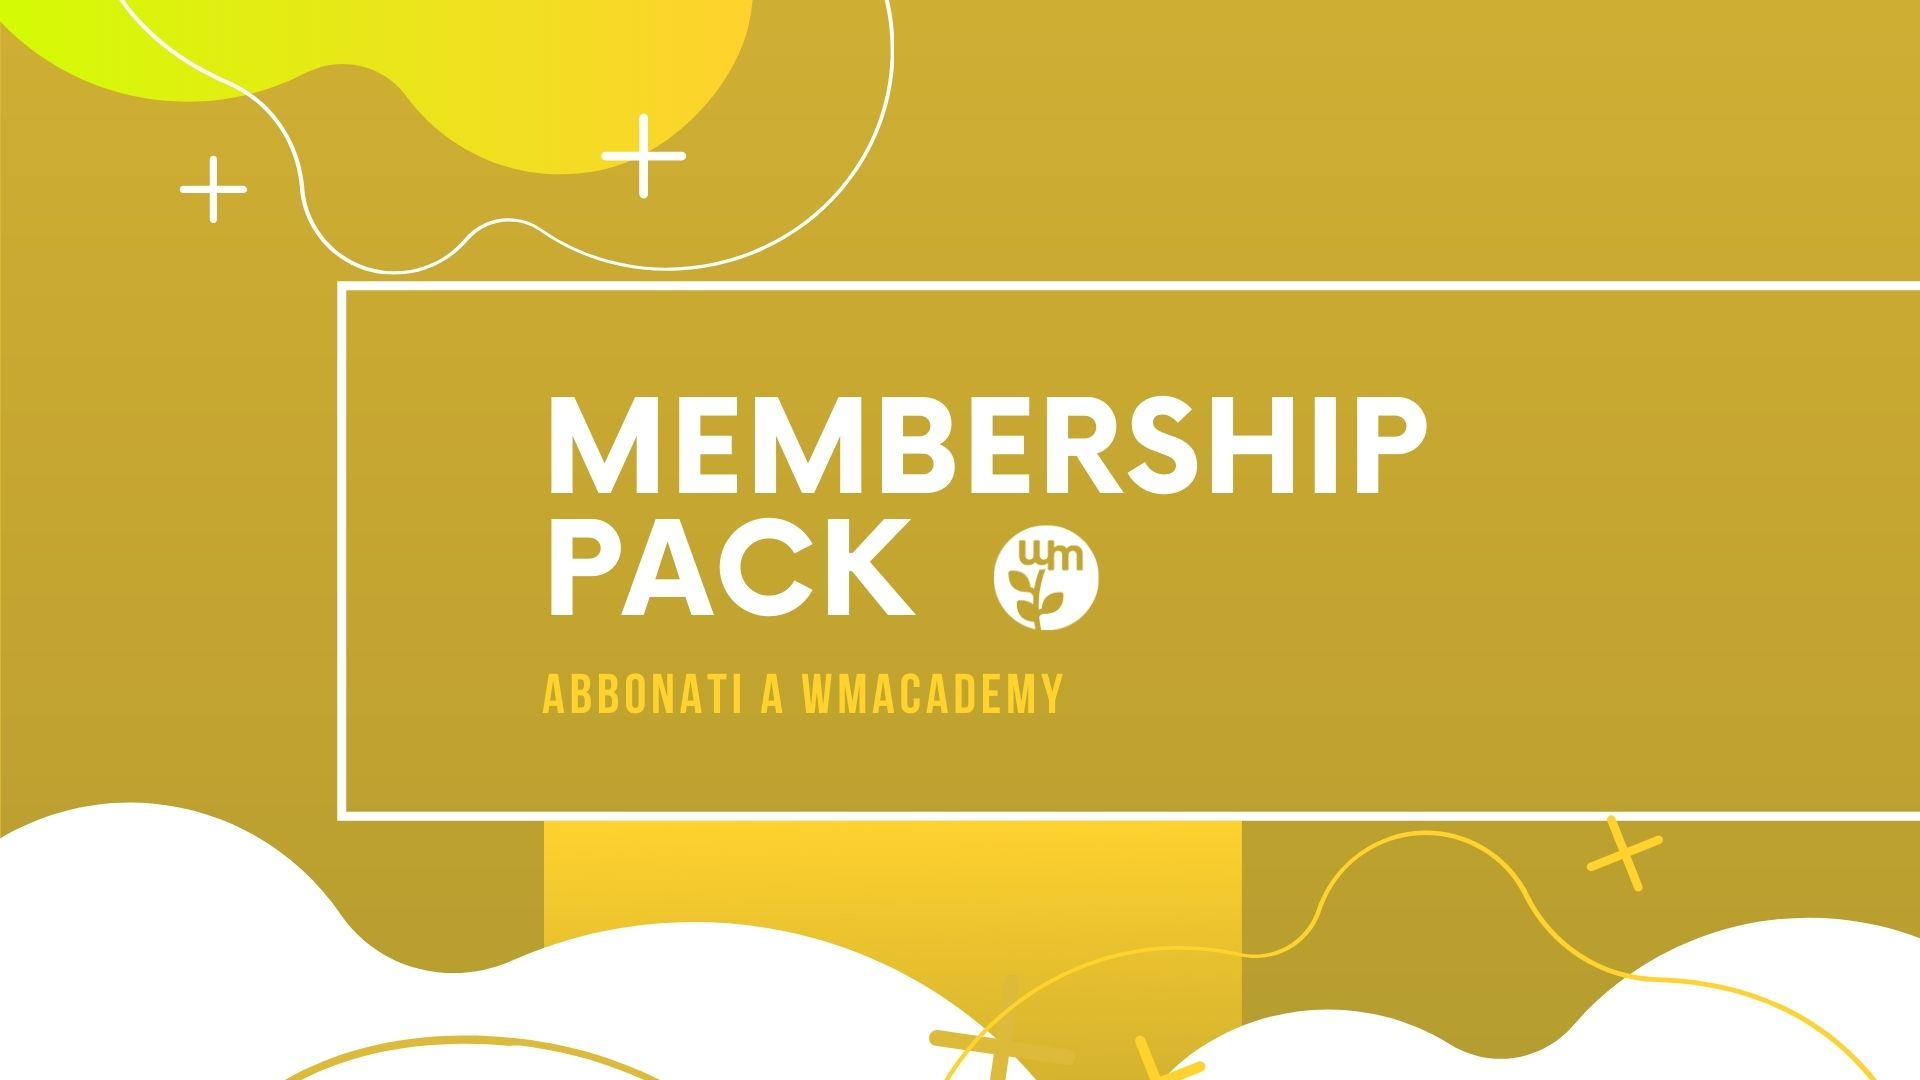 WMAcademy Membership Pack